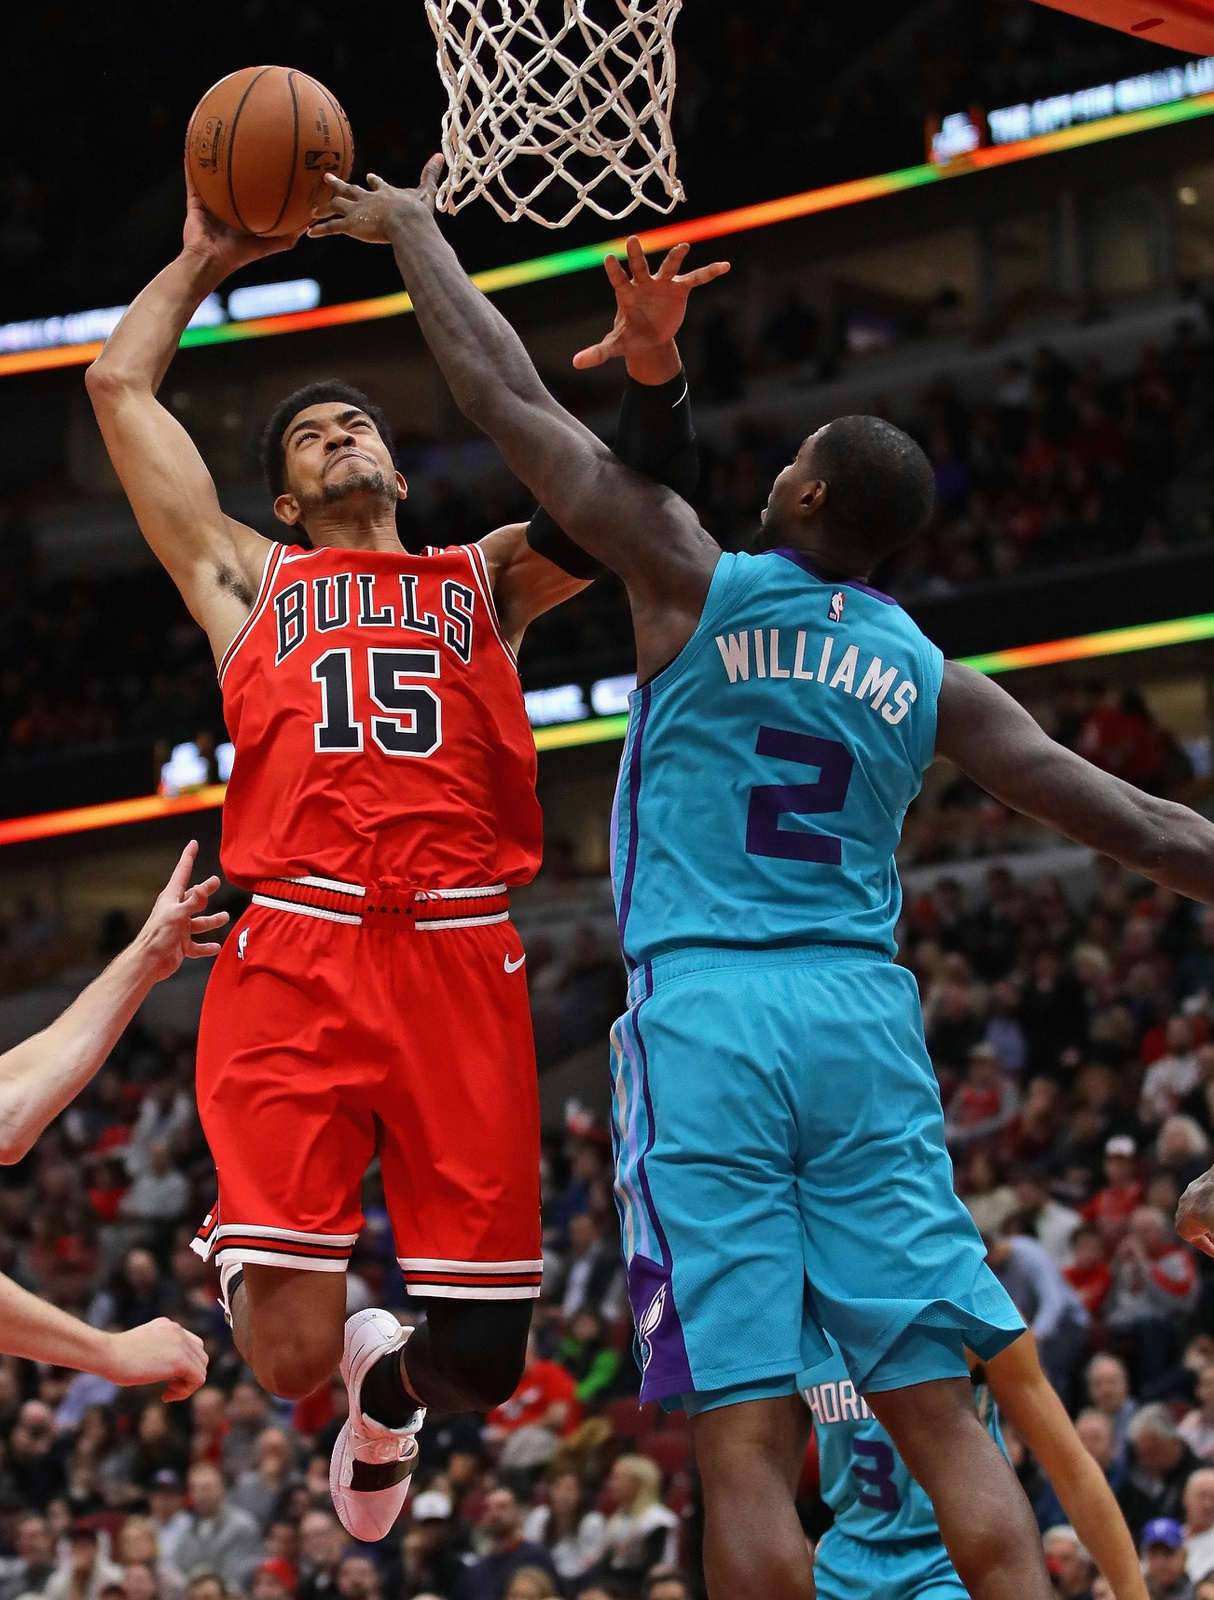 Chandler Hutchison #15 of the Chicago Bulls goes up for a dunk over Marvin Williams #2 of the Charlotte Hornets at the United Center on October 24, 2018 in Chicago, Illinois.